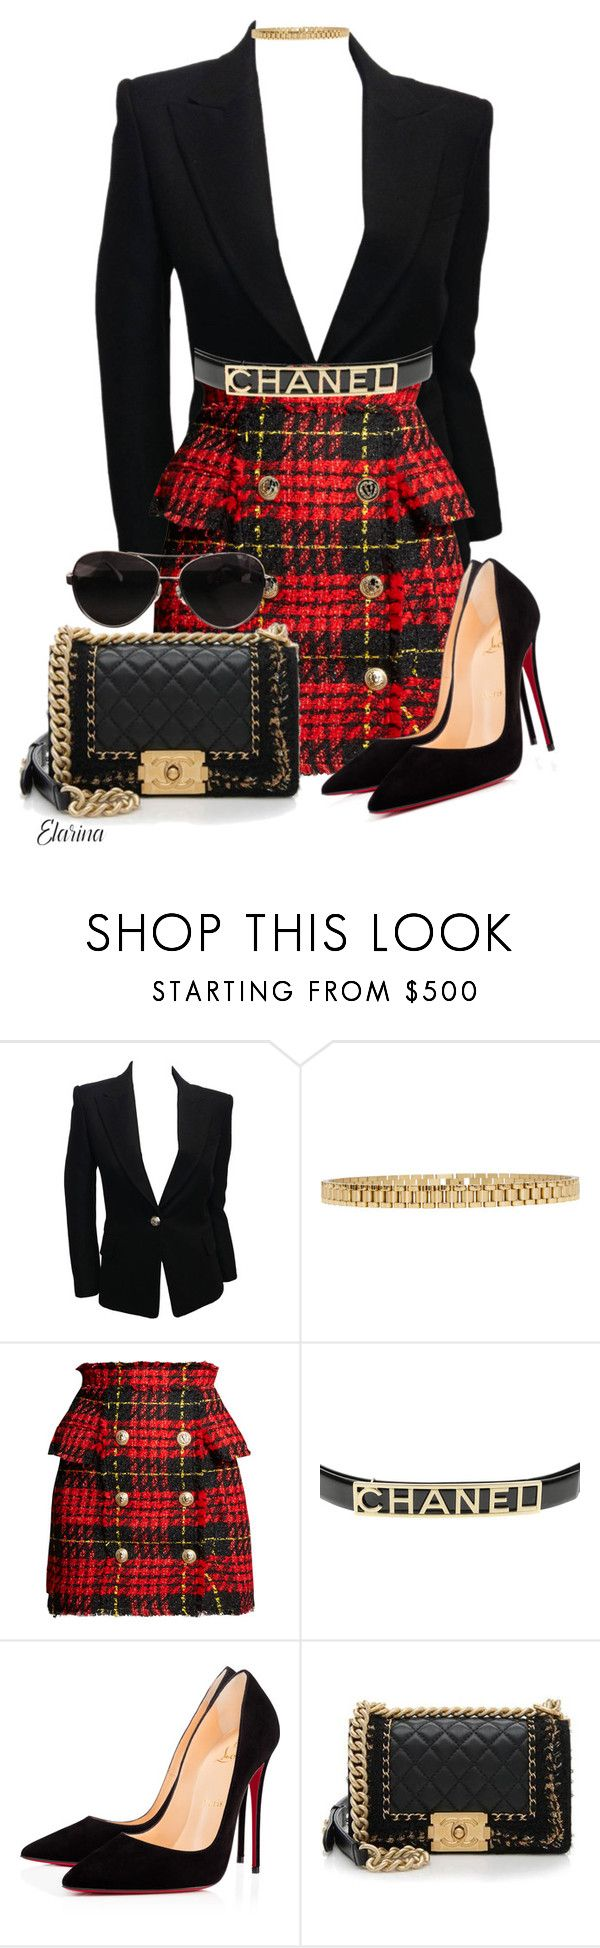 """Untitled #340"" by elarina ❤ liked on Polyvore featuring Balmain, AMBUSH, Chanel and Christian Louboutin"